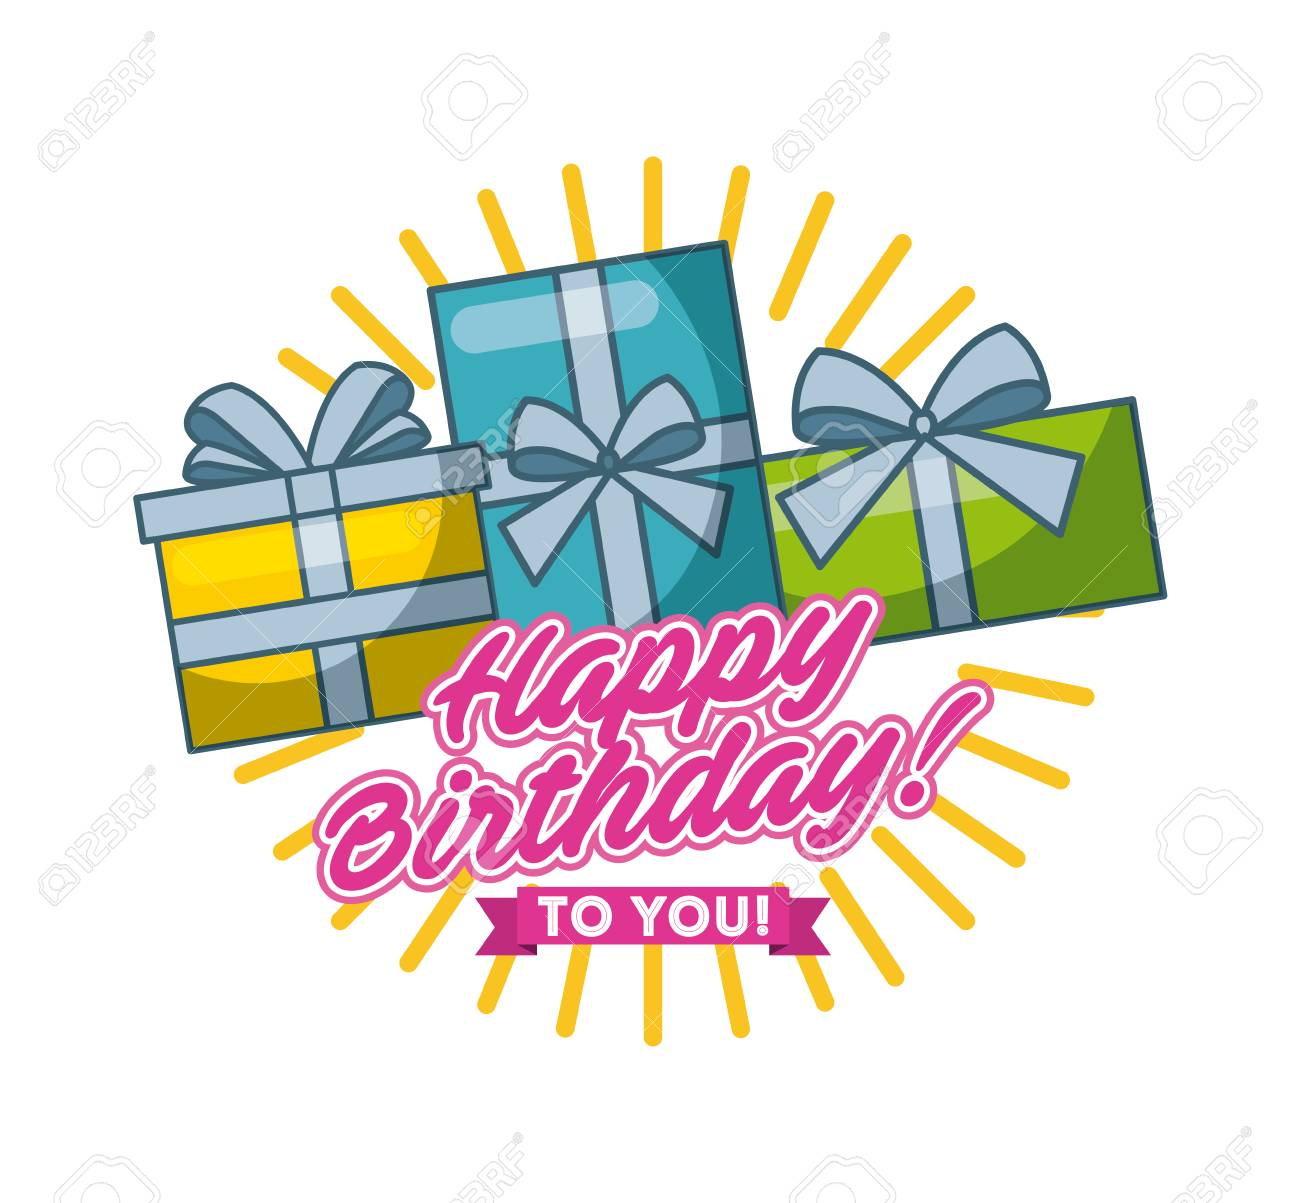 Happy Birthday Card With Gift Boxes Over White Background Colorful Design Vector Illustration Stock